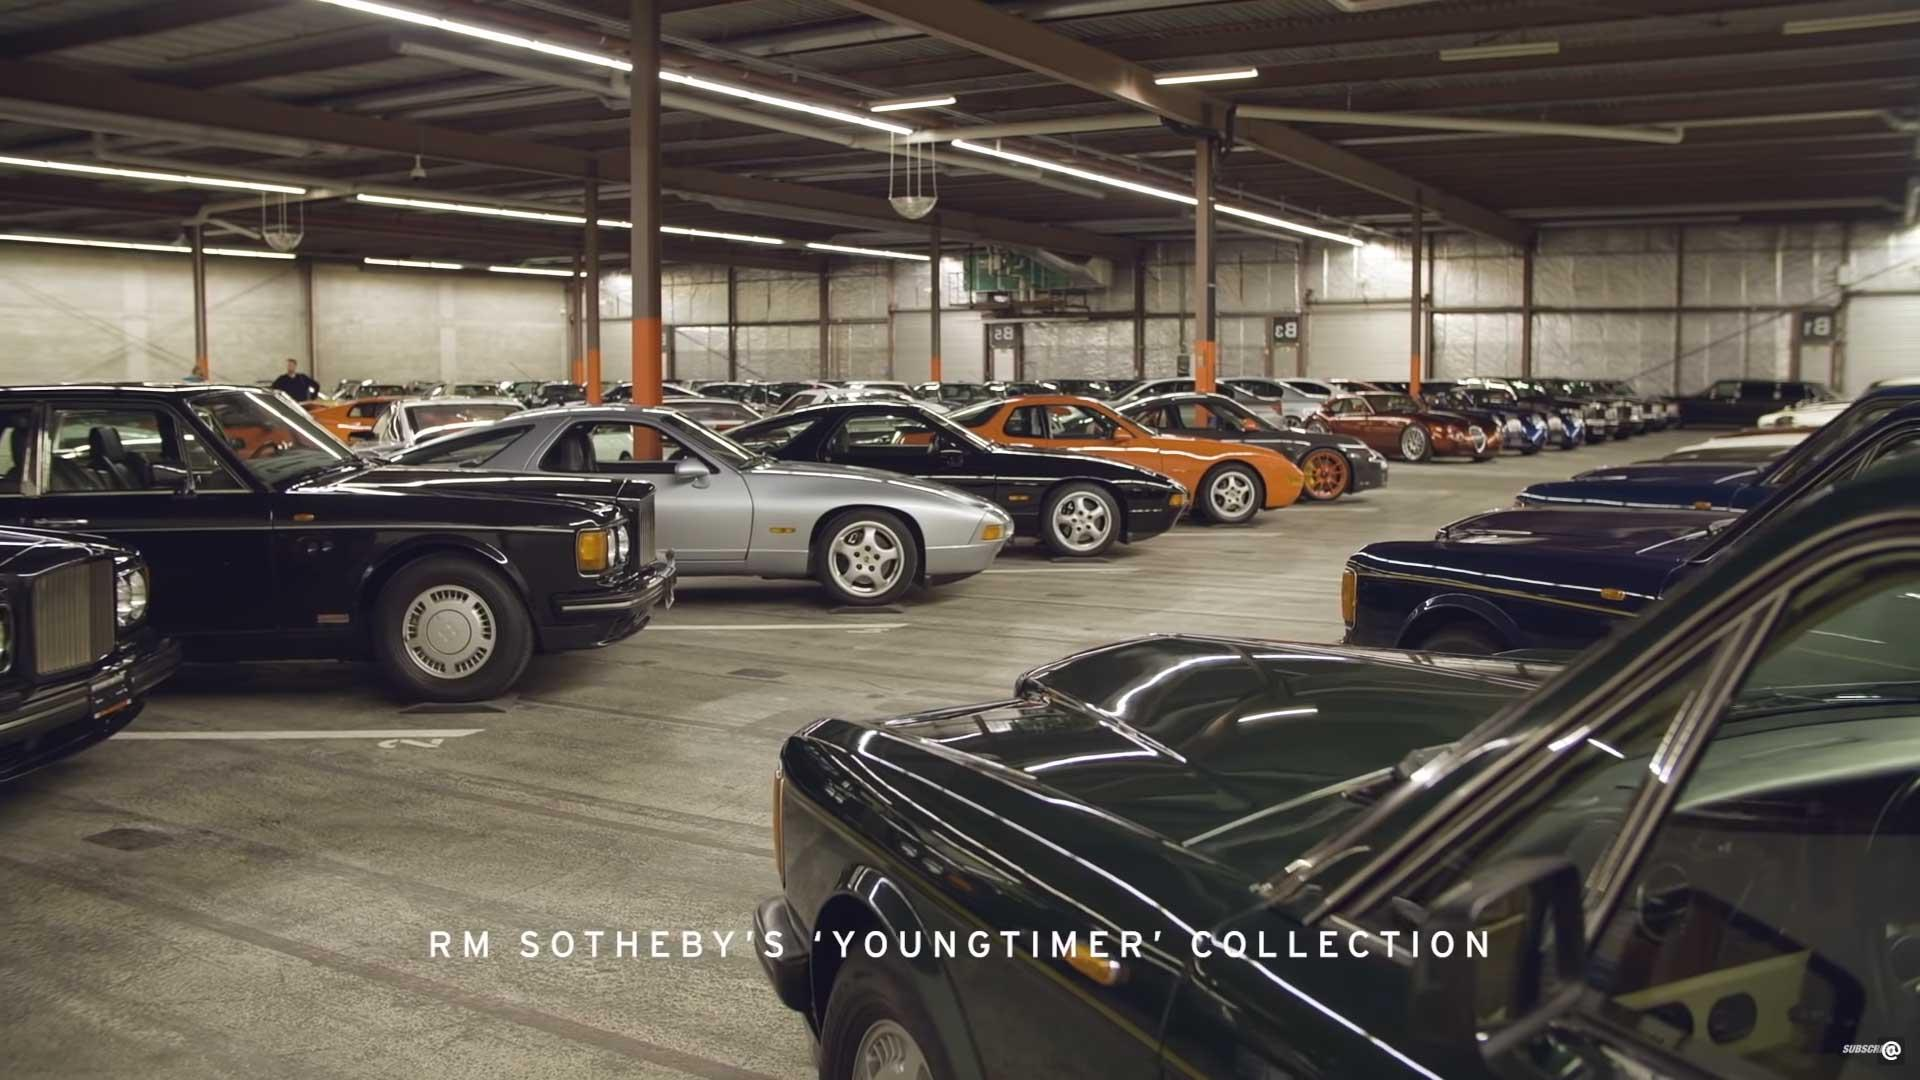 Chris Harris Drives: ultieme youngtimercollectie